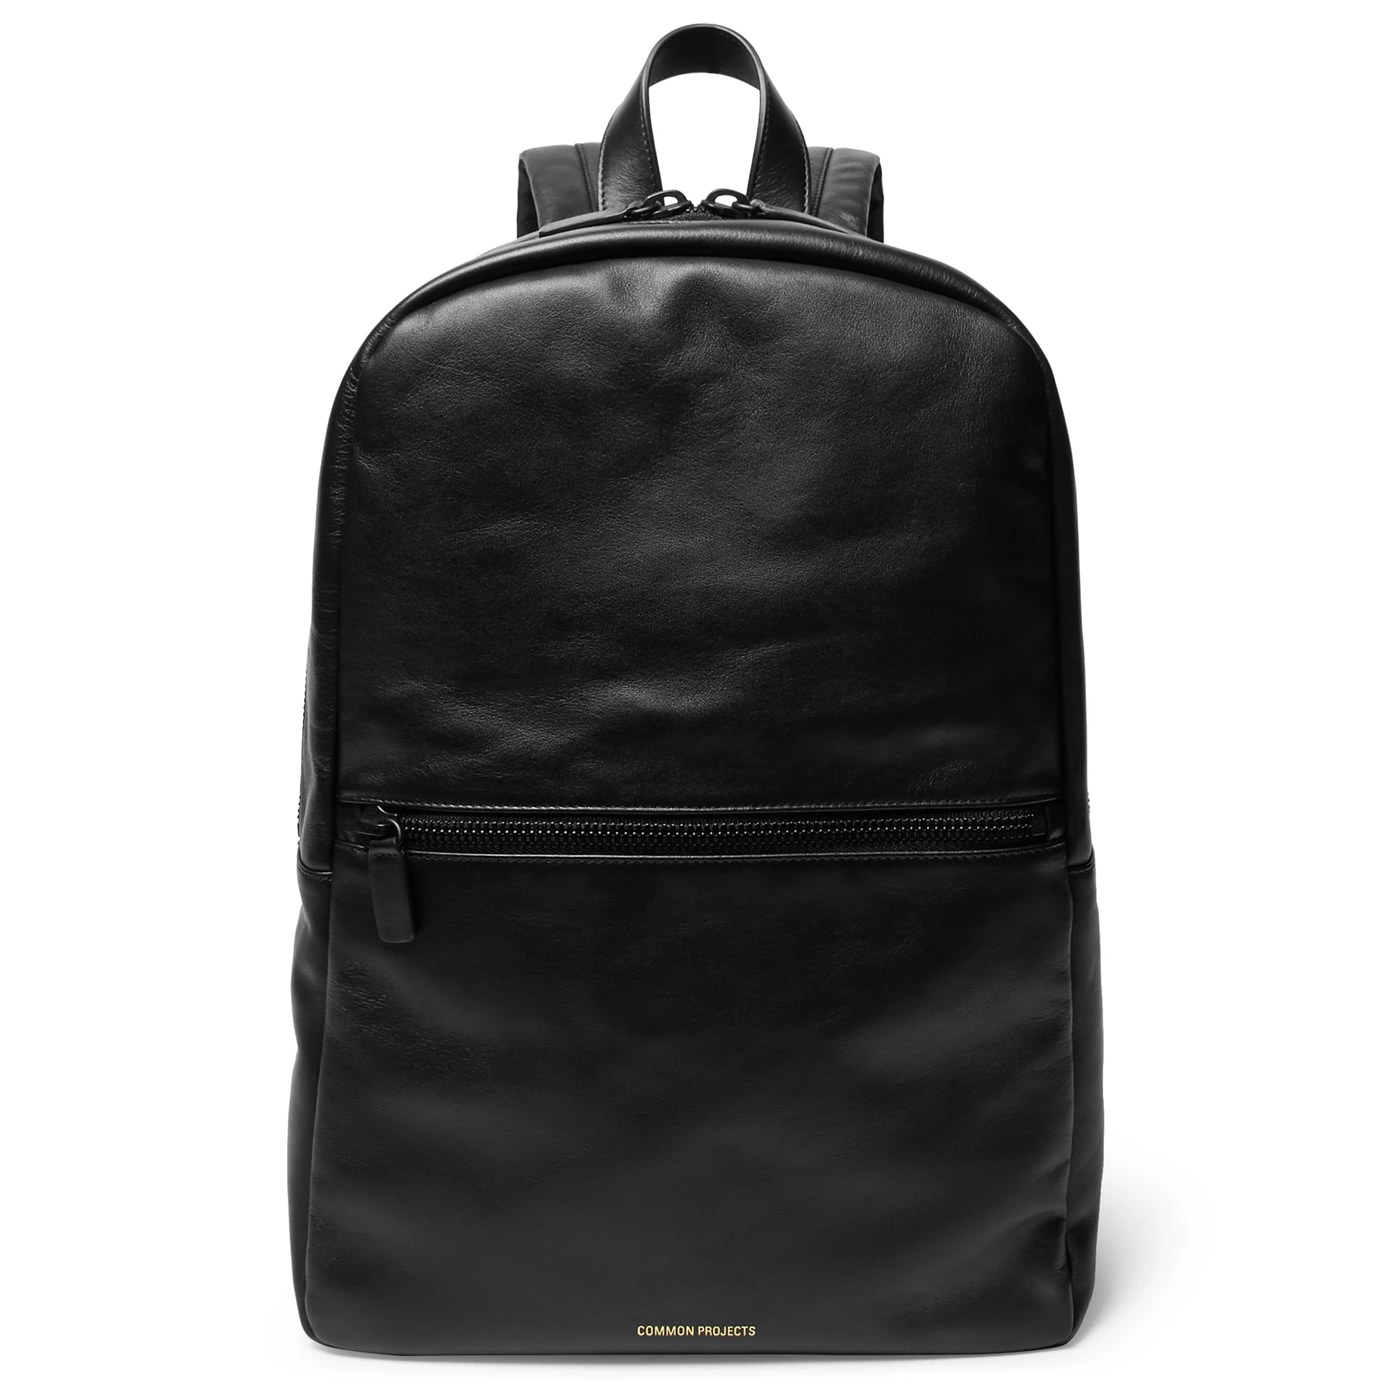 Style Mr Porter Backpack Sac Dos Common Projects Cuir Noir